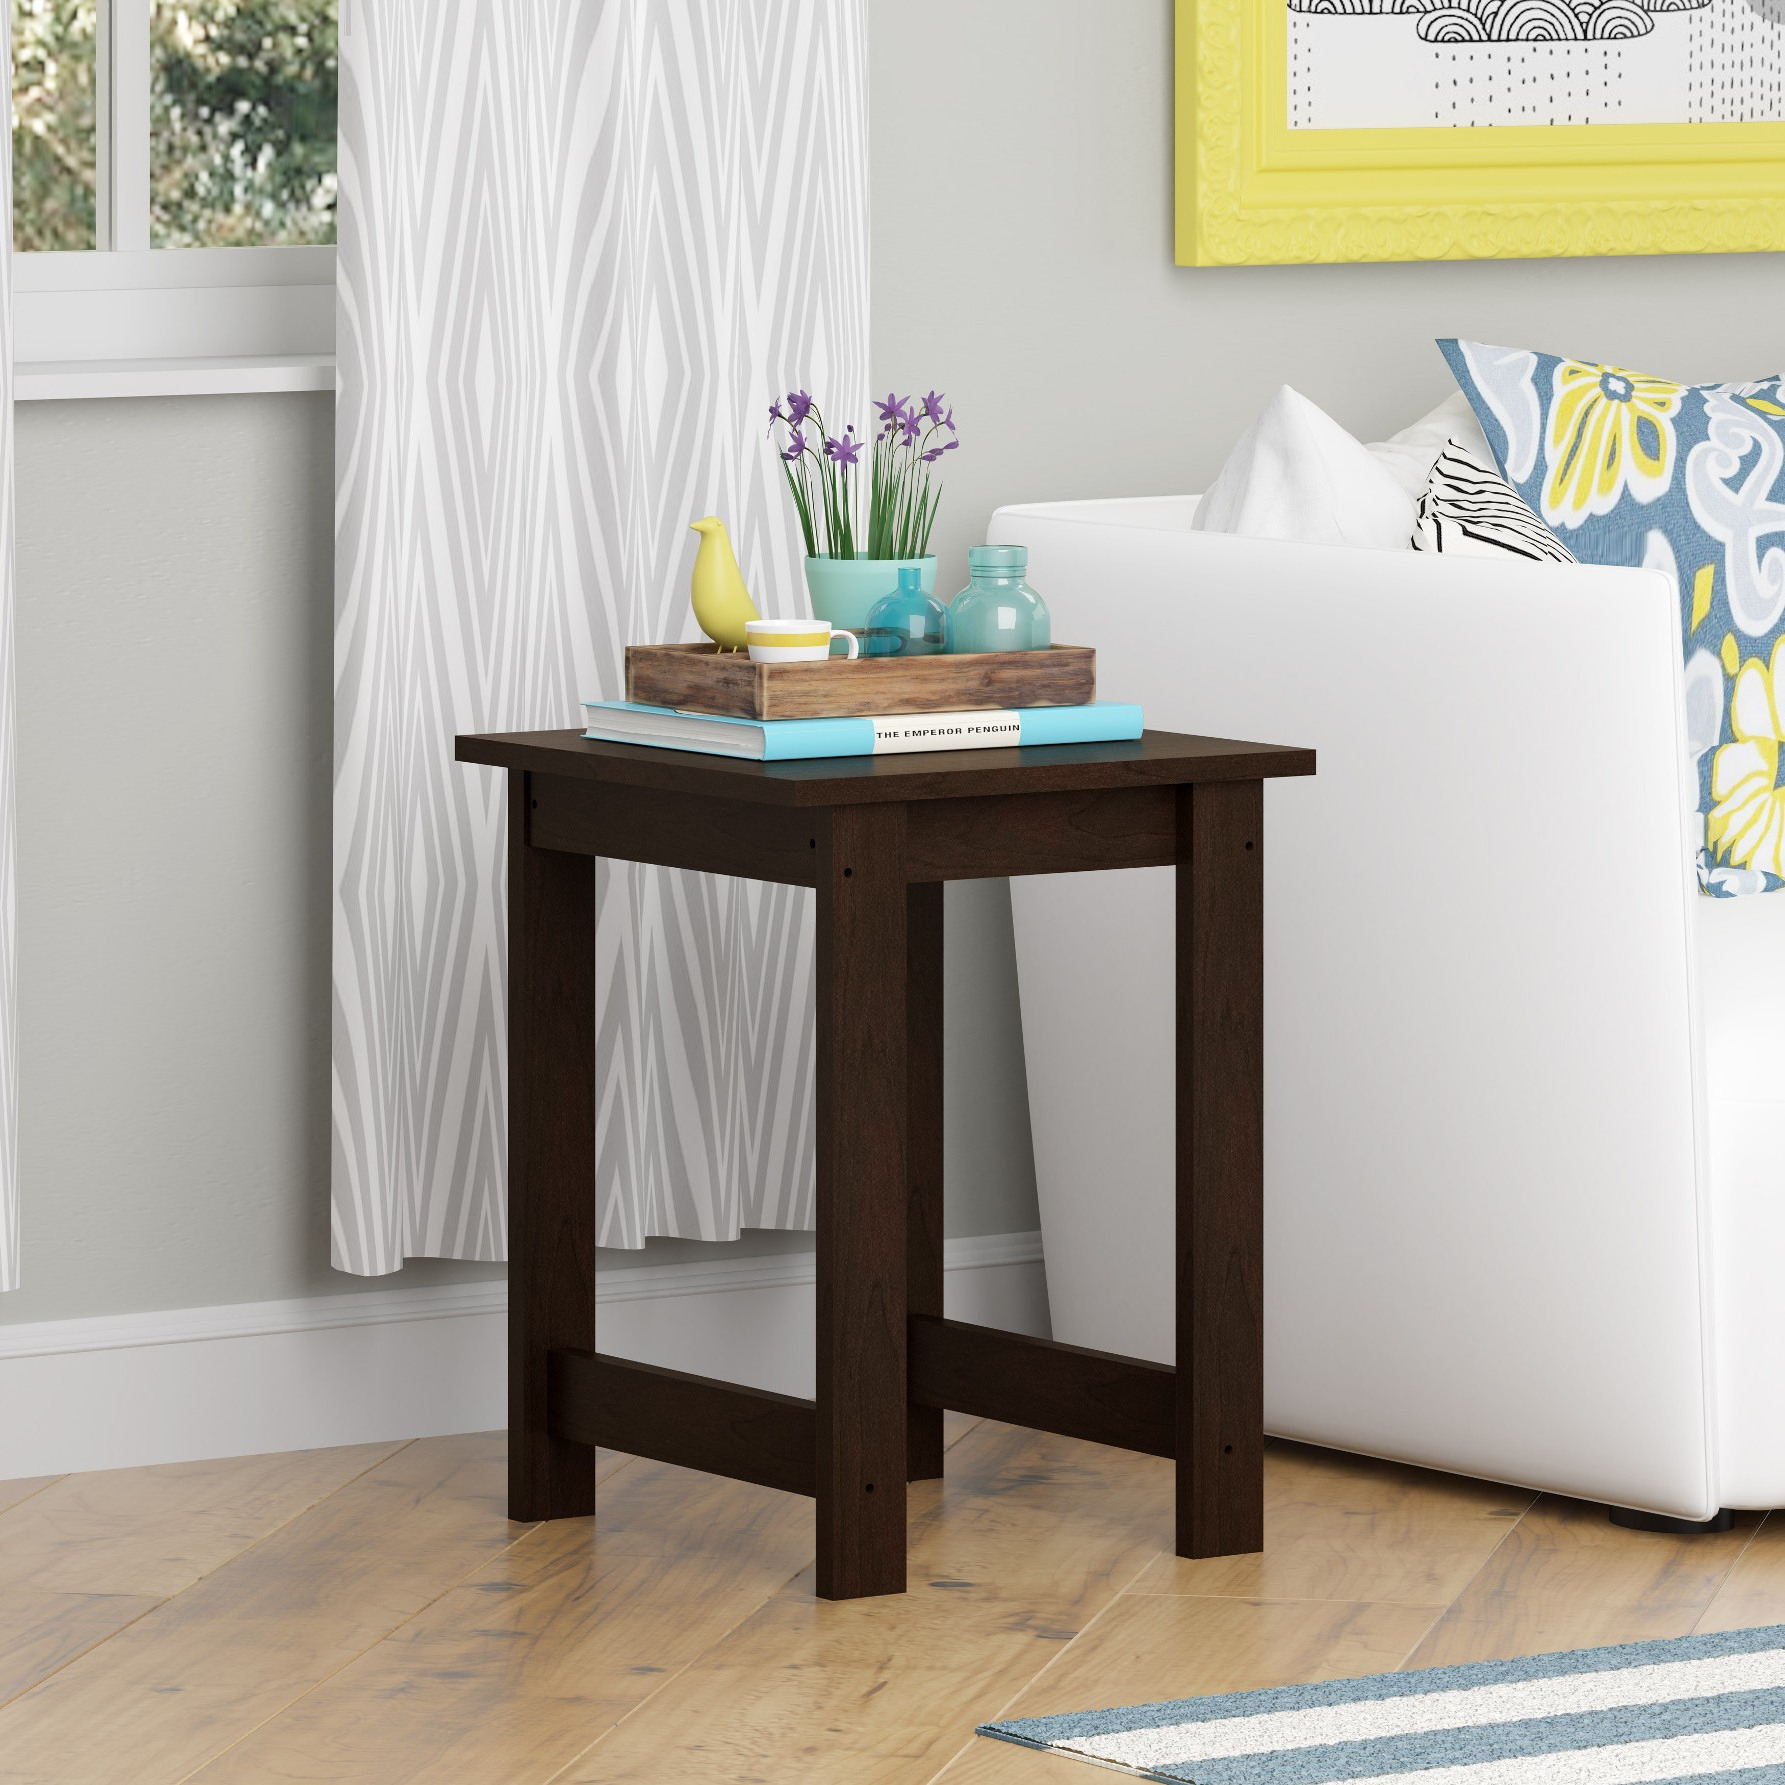 cheap wooden end tables for side table for small spaces living room